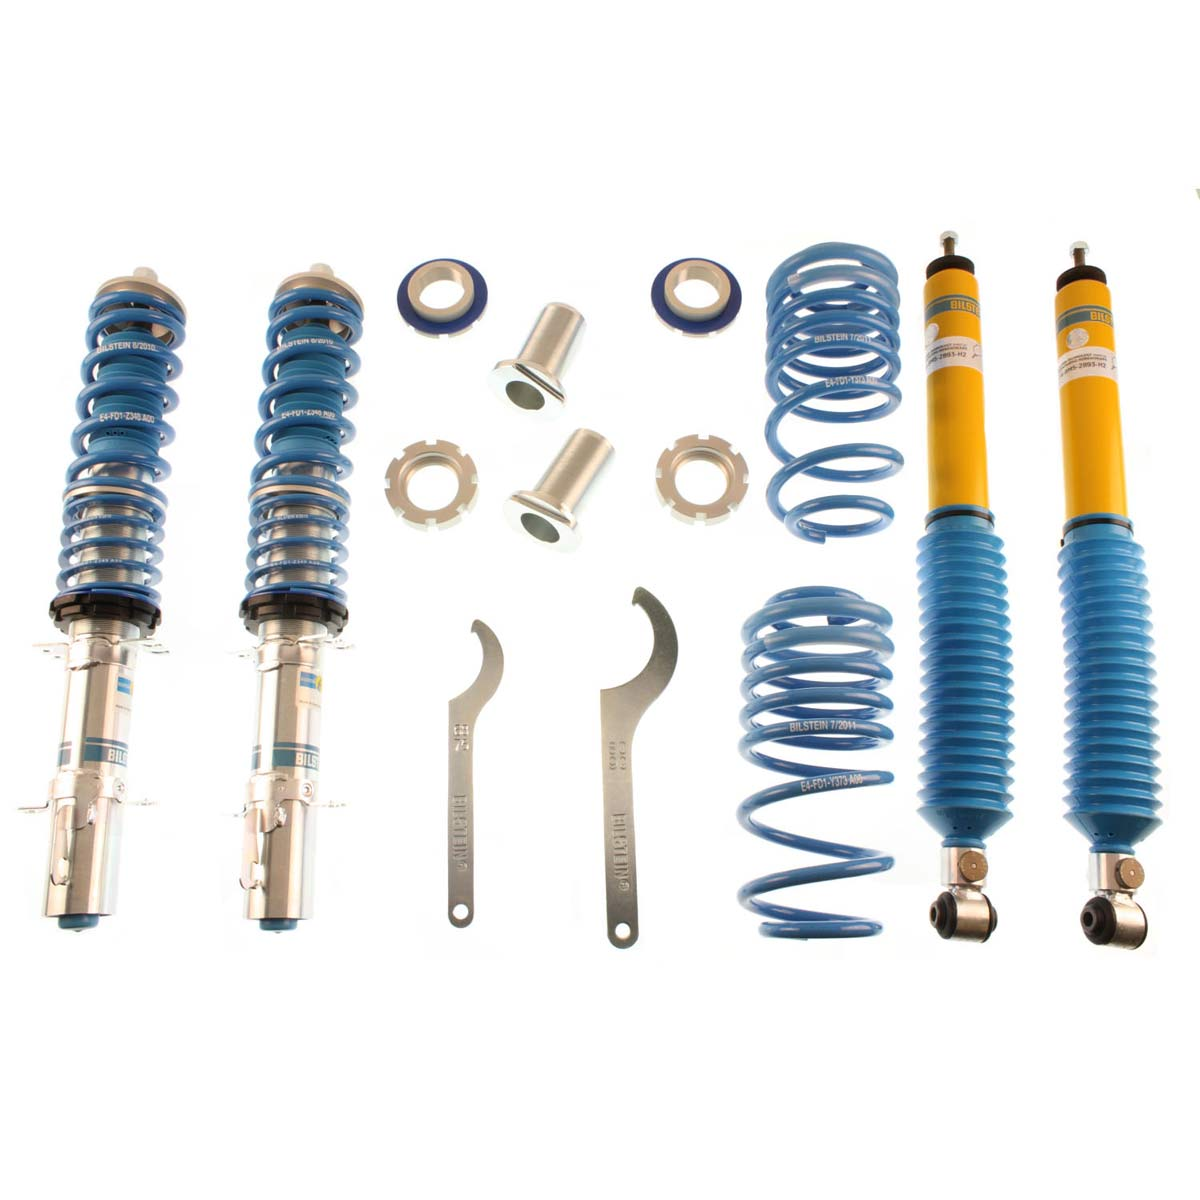 2015 Volkswagen Eos Suspension: B16 (PSS9) Suspension Kit Volkswagen